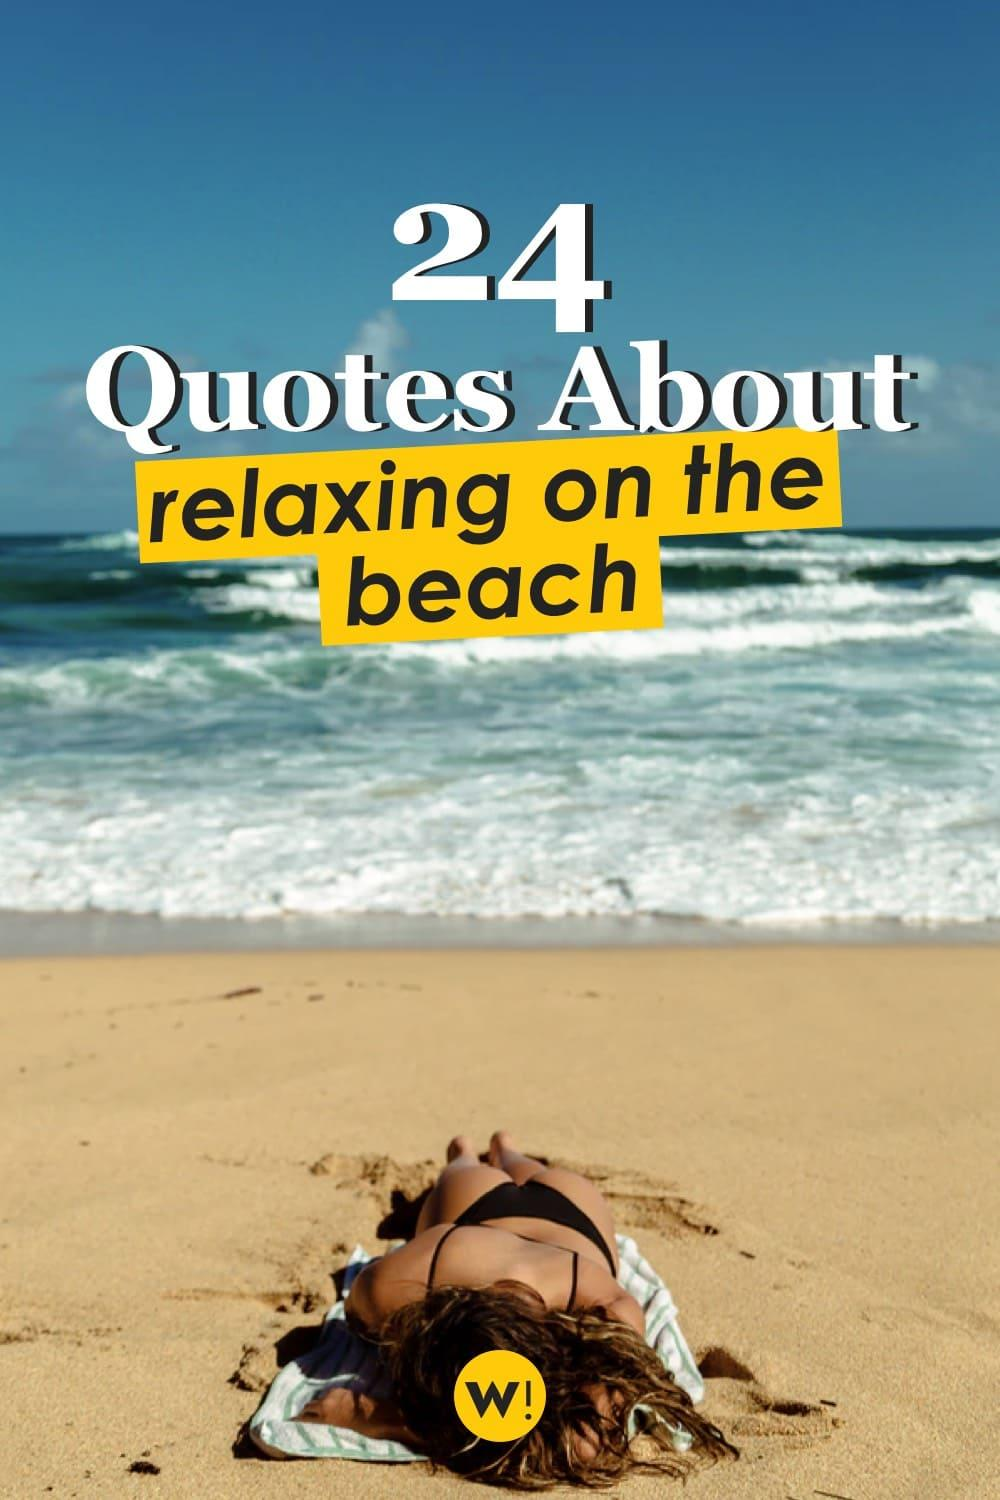 Ready to take the stress off and relax at the beach? These 24 relaxing at the beach quotes will help you get in the mood! beach relax quotes |beach relax caption | relaxing beach quotes |beach relaxation quotes peace |beach sayings and quotes | sea relax quotes